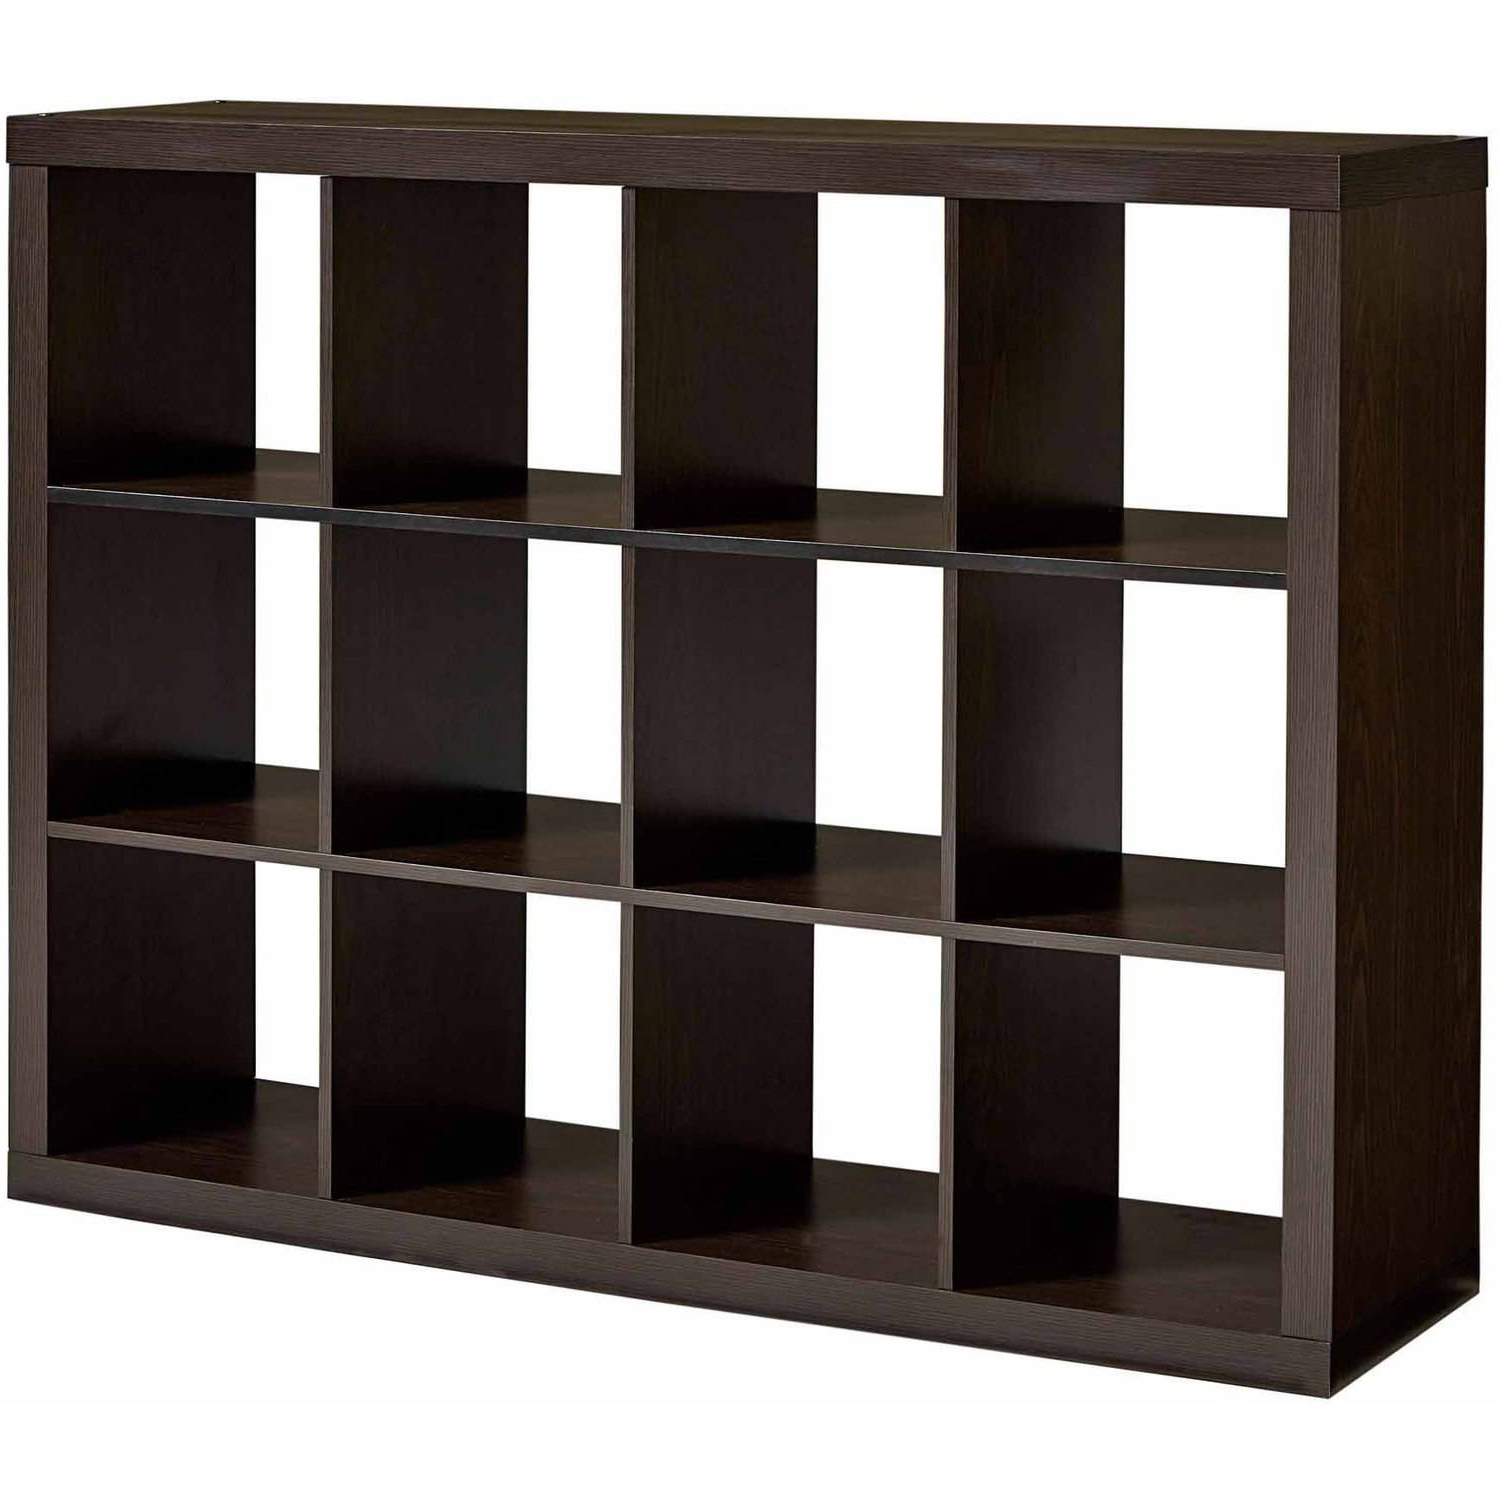 Cubicals Cube Bookcases Within Widely Used Storage: Suit Your Personal Needs And Taste With Walmart (Gallery 17 of 20)